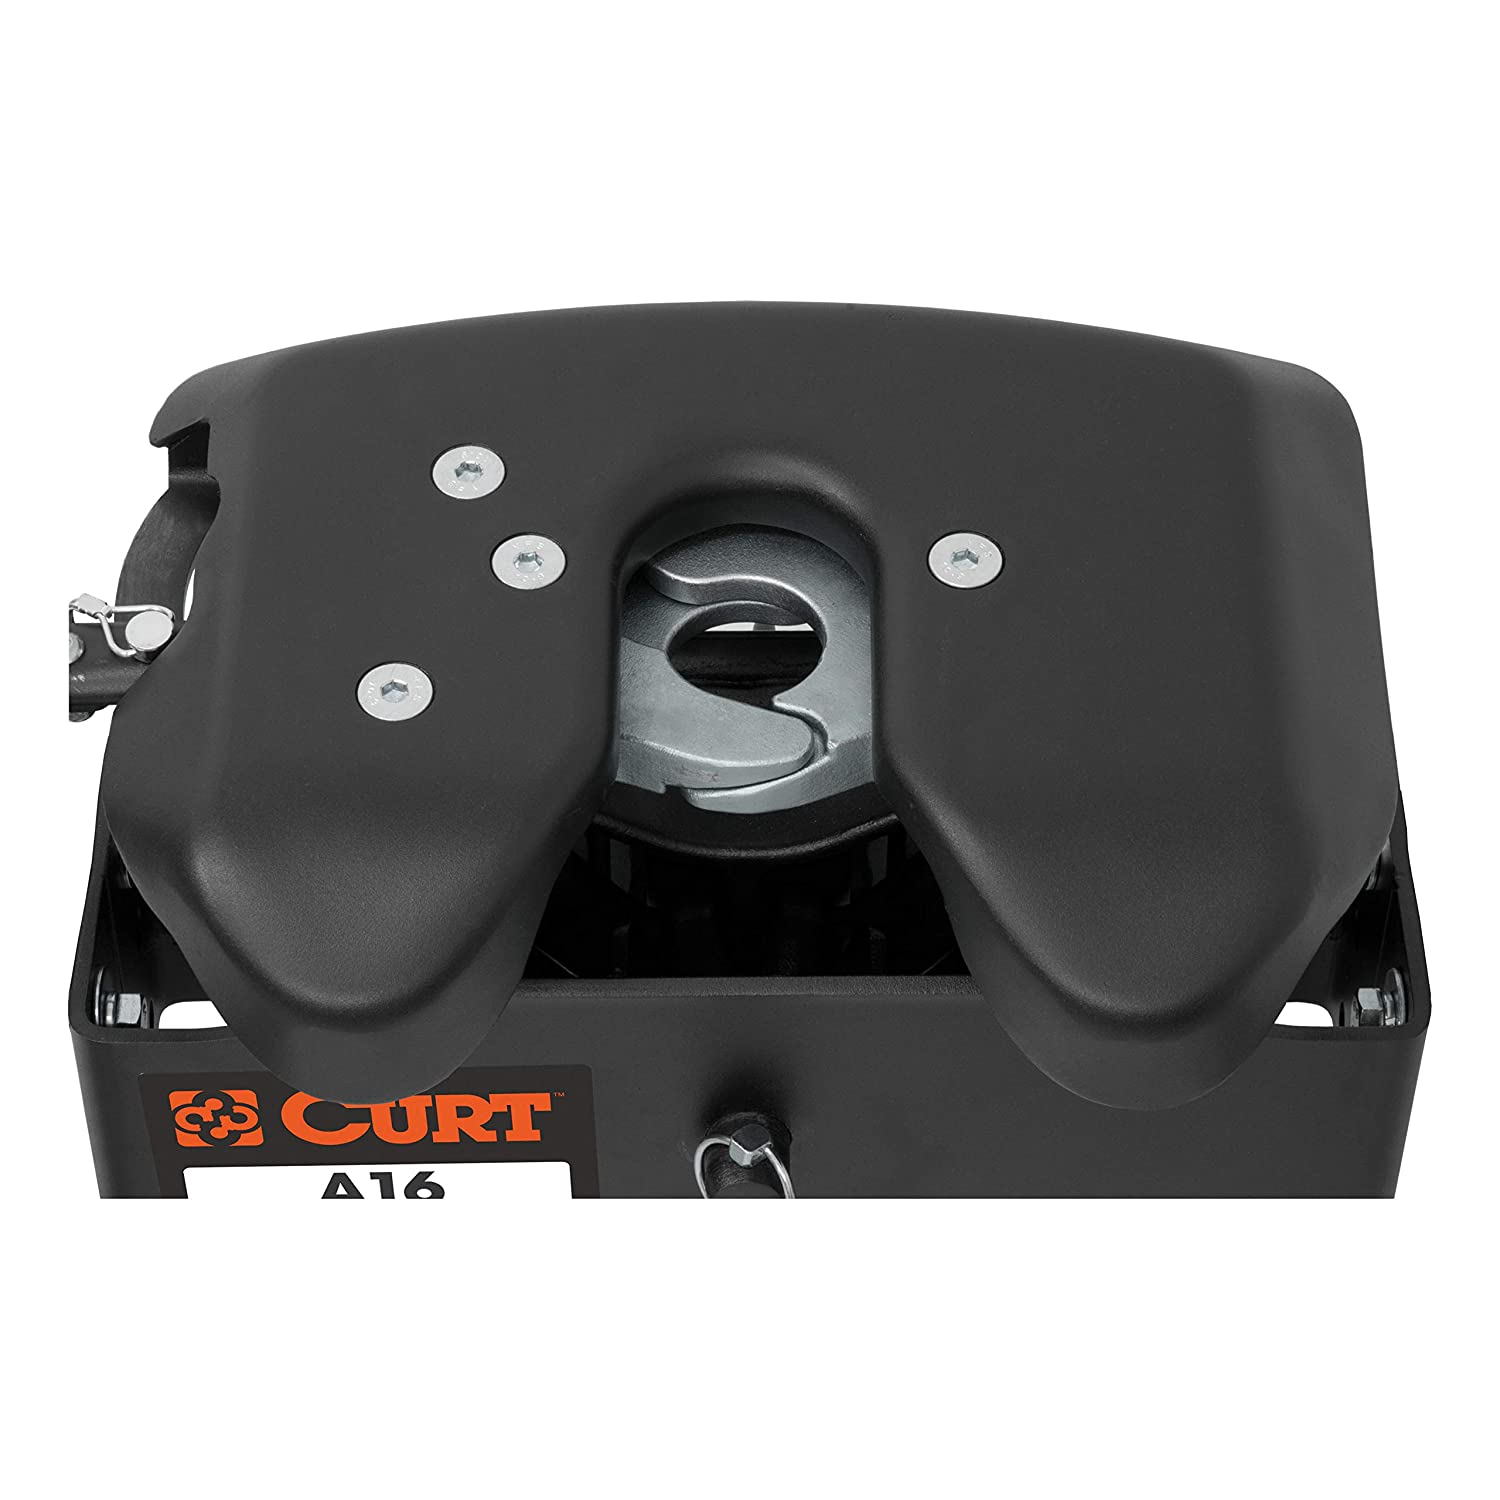 Short Bed Trucks 16,000 lbs. CURT 16685 A16 5th Wheel Slider Hitch for Ram Puck System